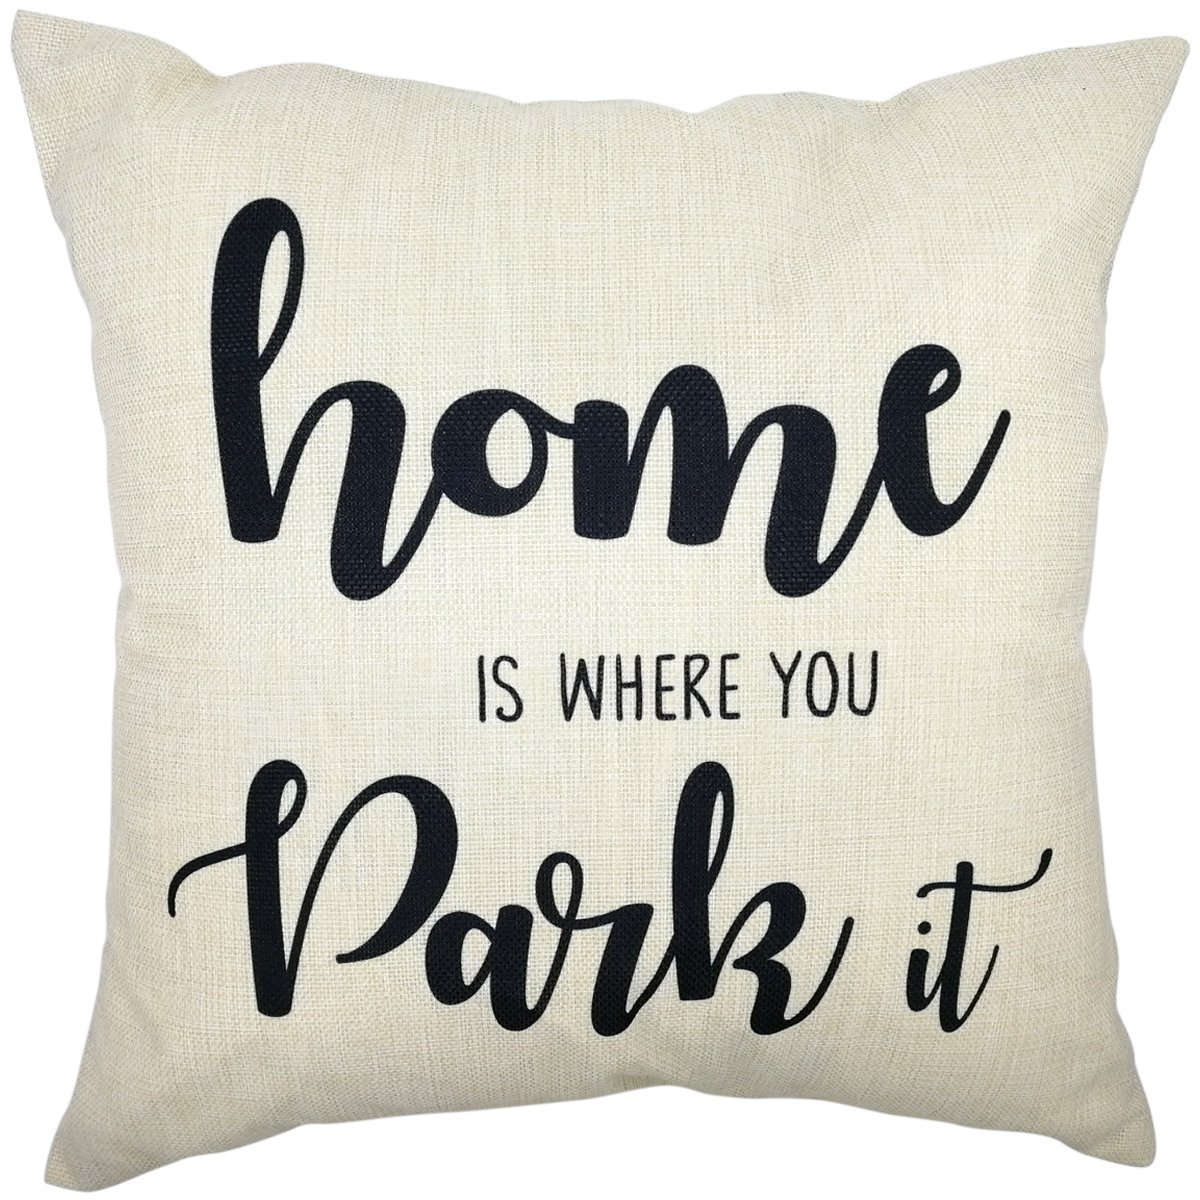 Arundeal Home Is Where You Park It 18 x 18 Inch Cotton Linen Square Throw Pillow Cases Cushion Cover